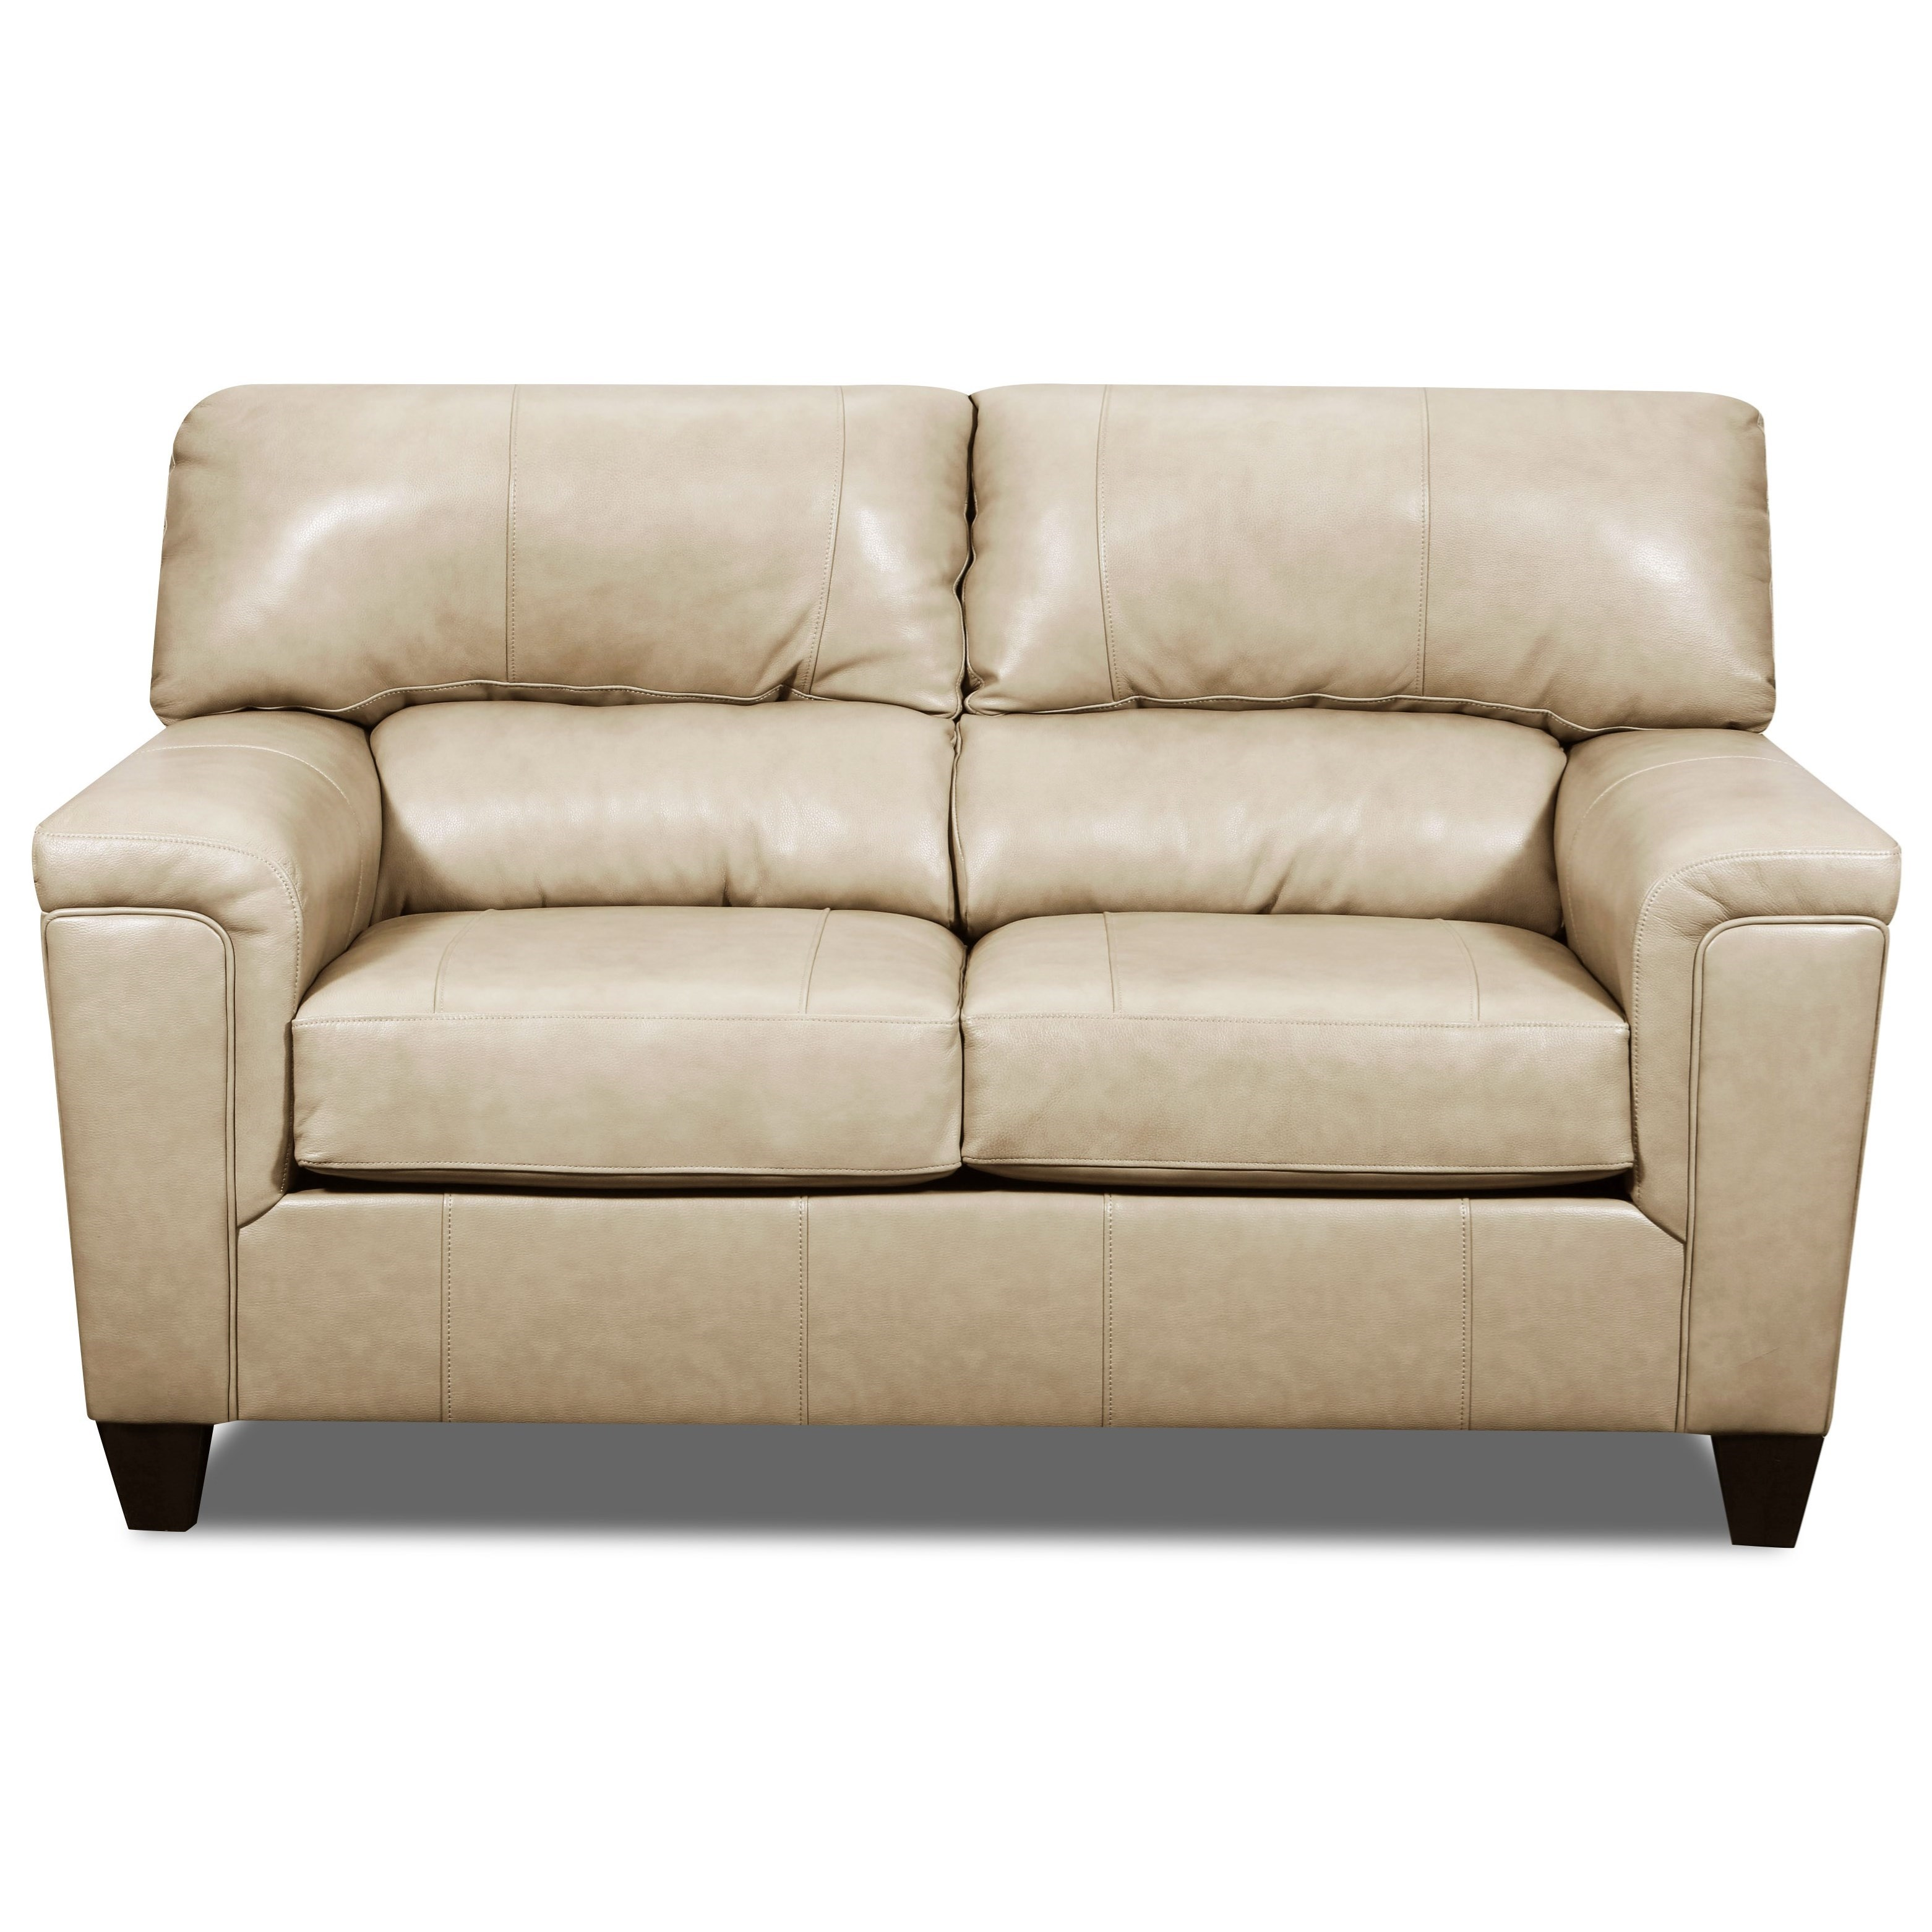 2038 Loveseat by Lane at Esprit Decor Home Furnishings